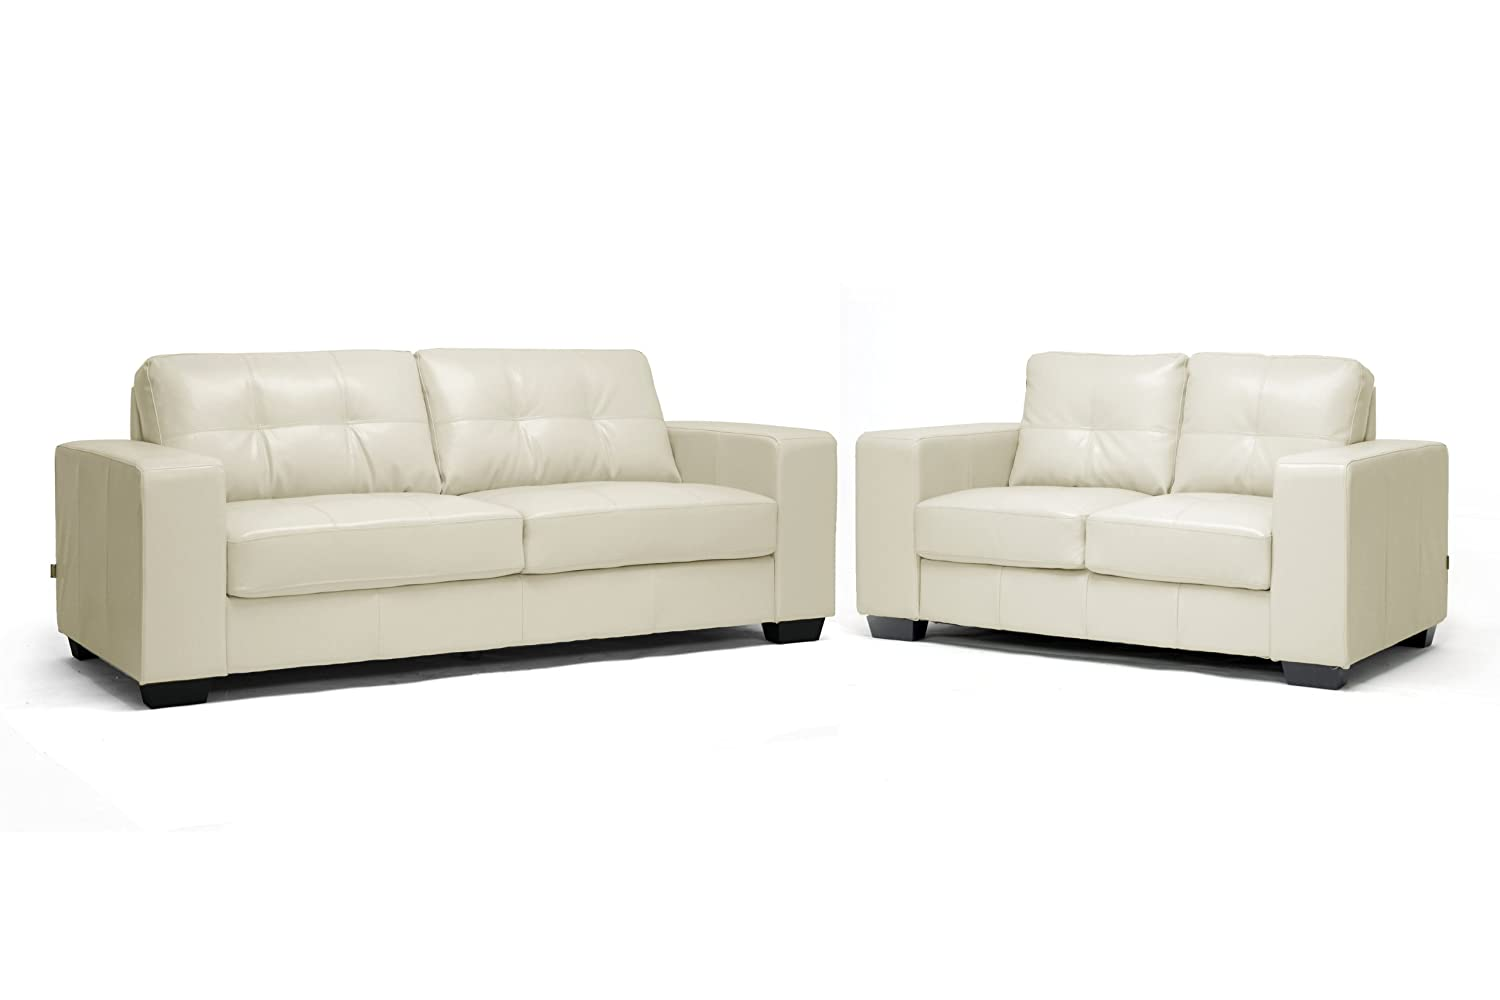 Whitney Modern Ivory Leather Sofa And Loveseat Set Hereo Sofa